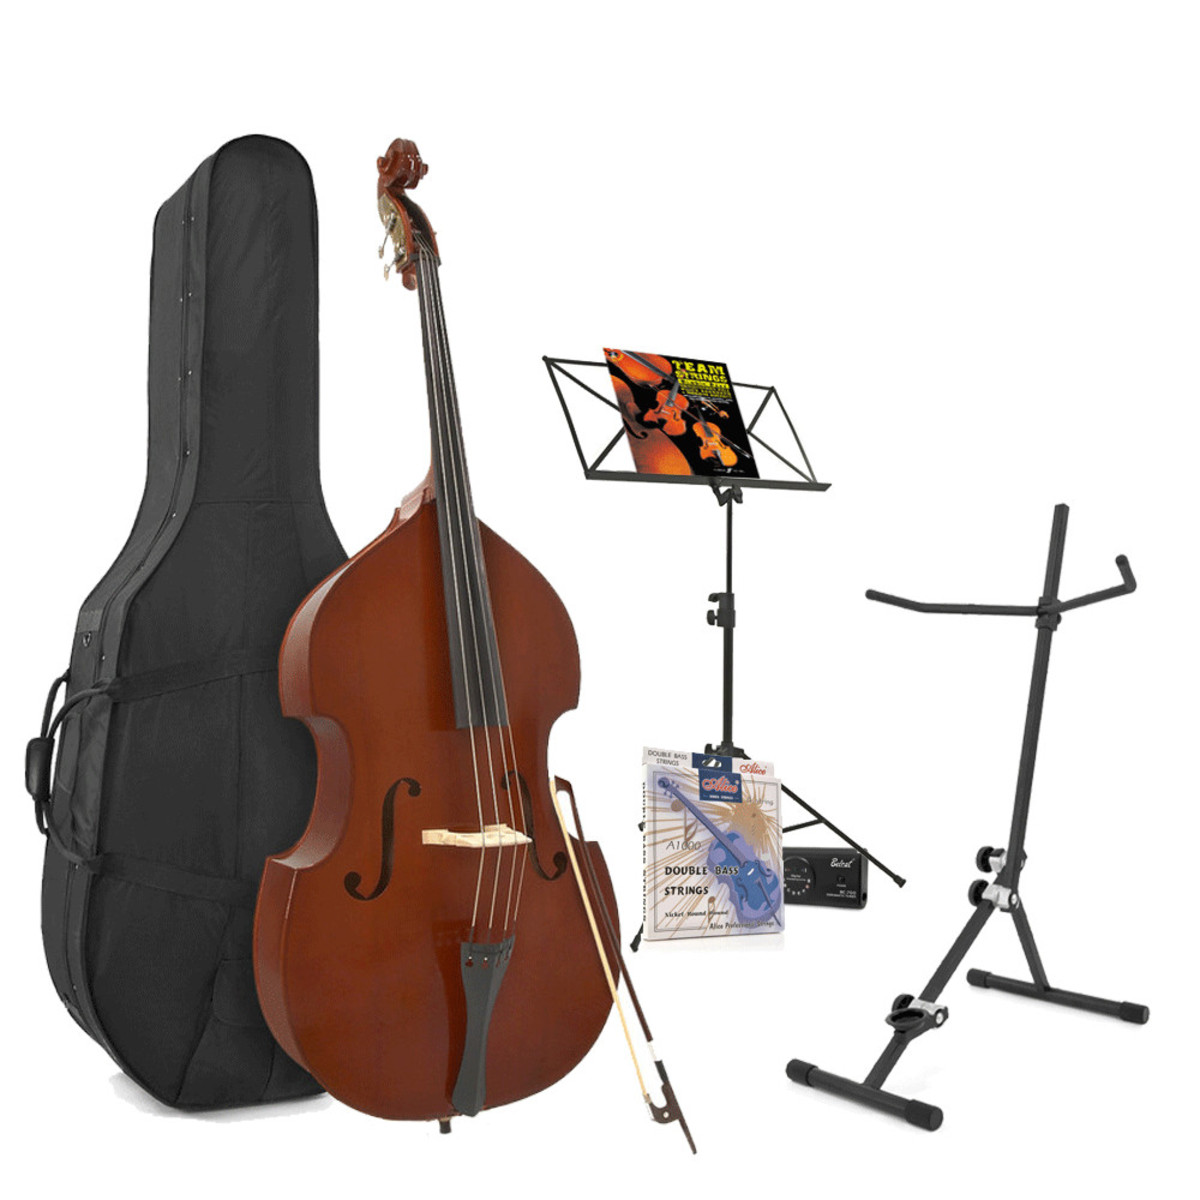 Image of Student 3/4 Double Bass + Accessory Pack by Gear4music